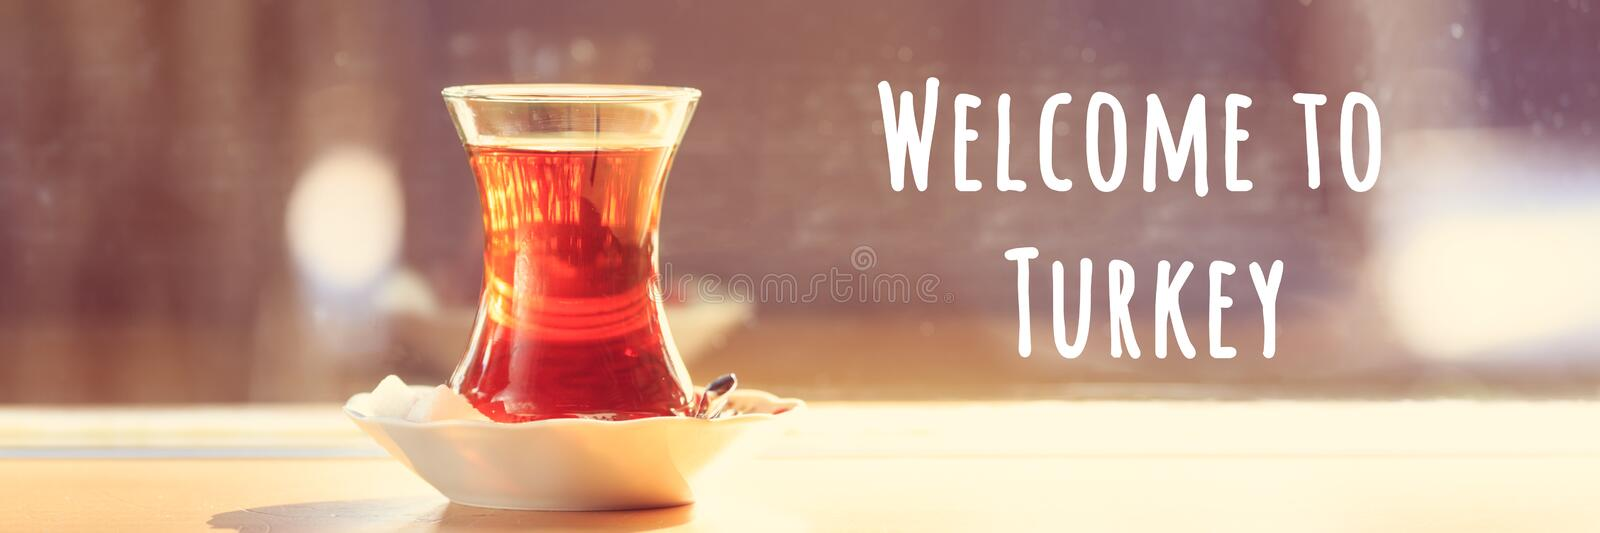 Hot turkish tea outdoors near glass wall. Turkish tea and traditional turkish culture concept. Welcome to Turkey text. Hot turkish tea outdoors near glass wall royalty free stock images